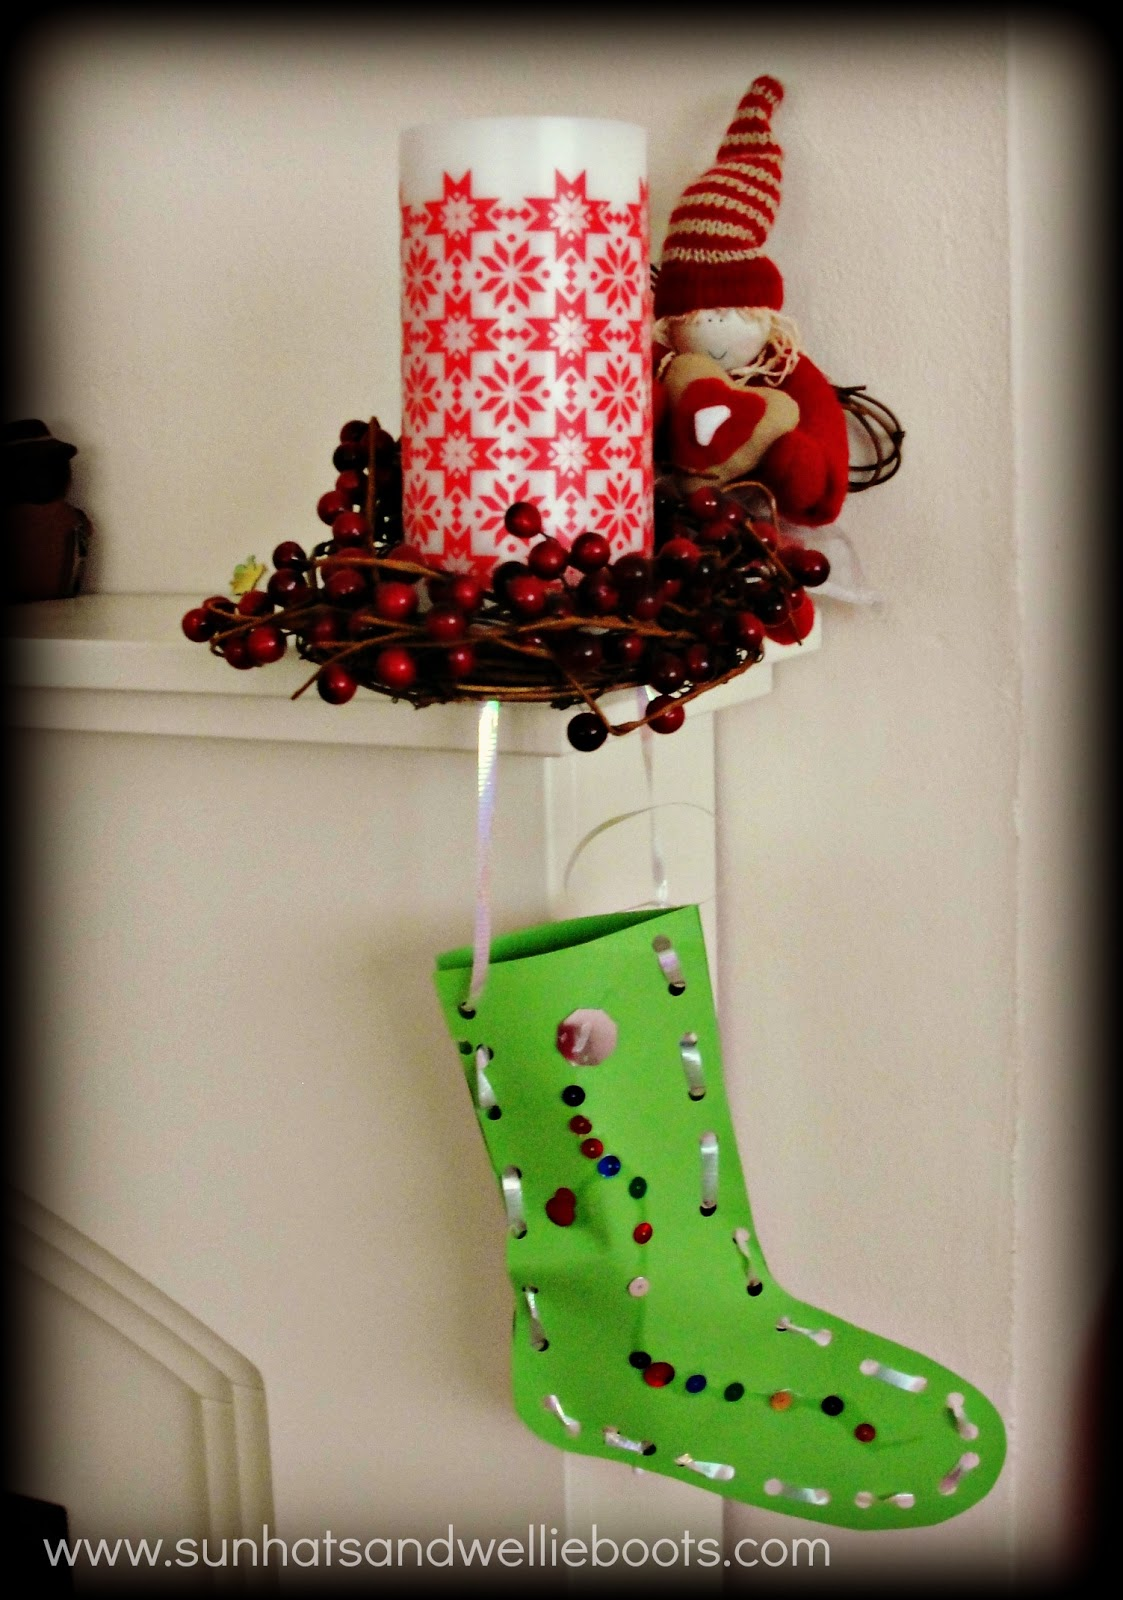 Sun Hats Wellie Boots Christmas Stockings Threading